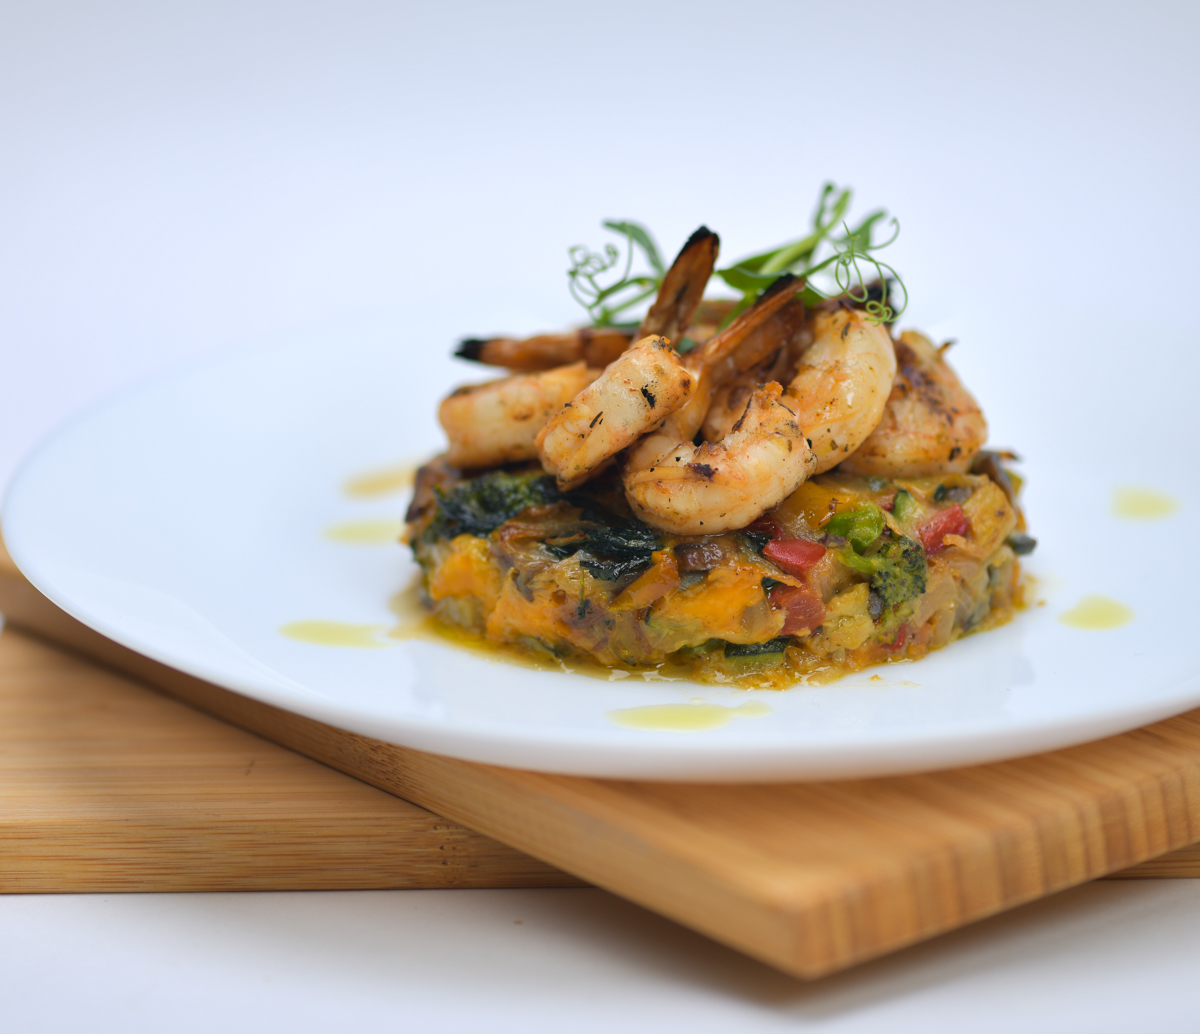 Grilled Prawn with Roasted Veggies